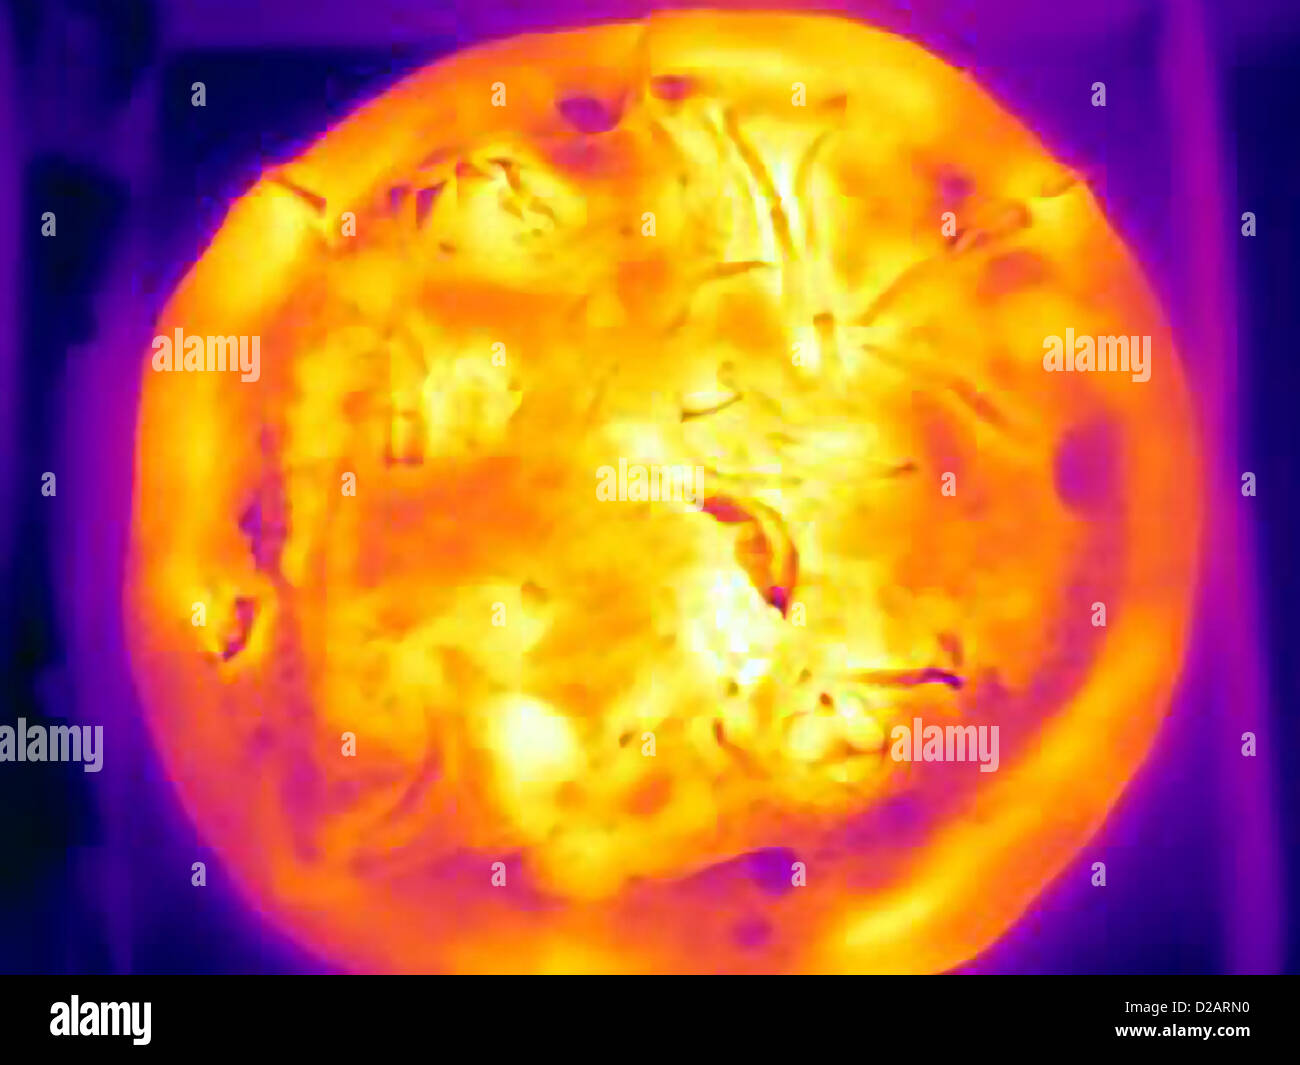 Thermal image of pizza in box - Stock Image